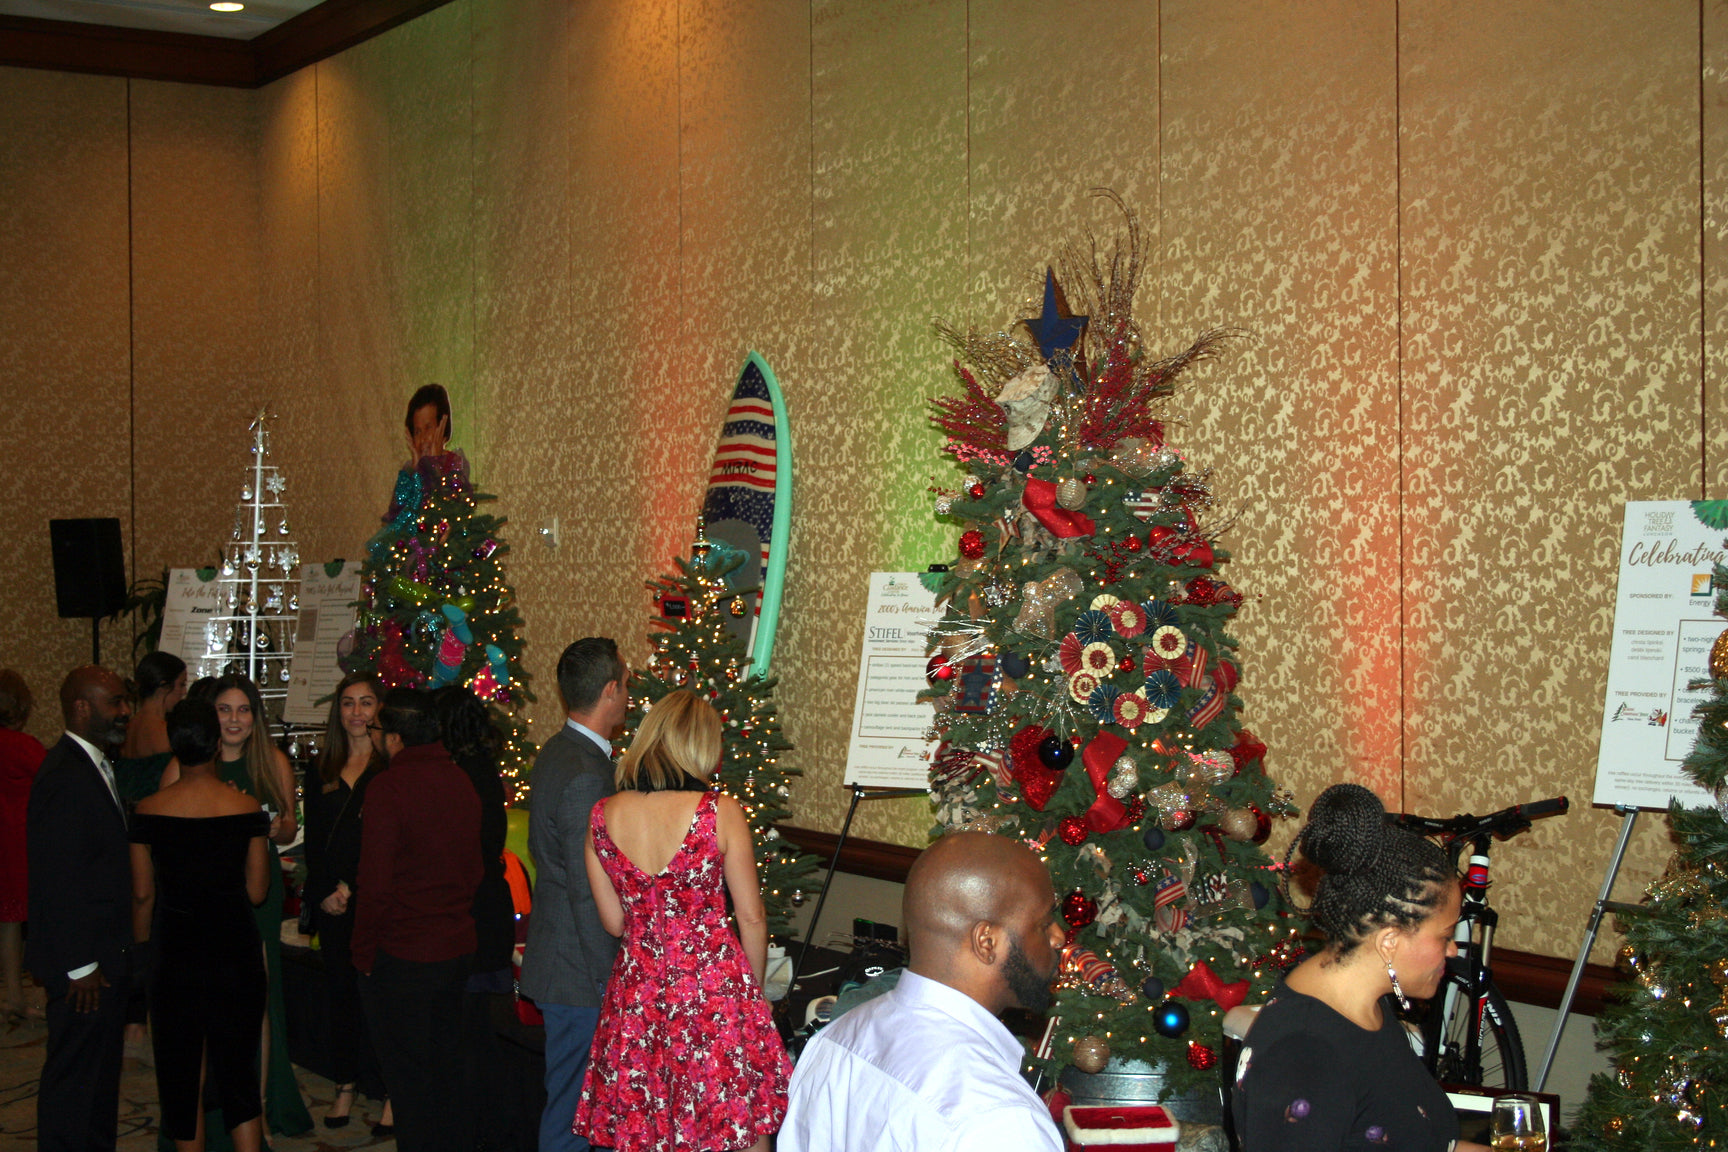 A crowd looking at items displayed and decorated Christmas trees